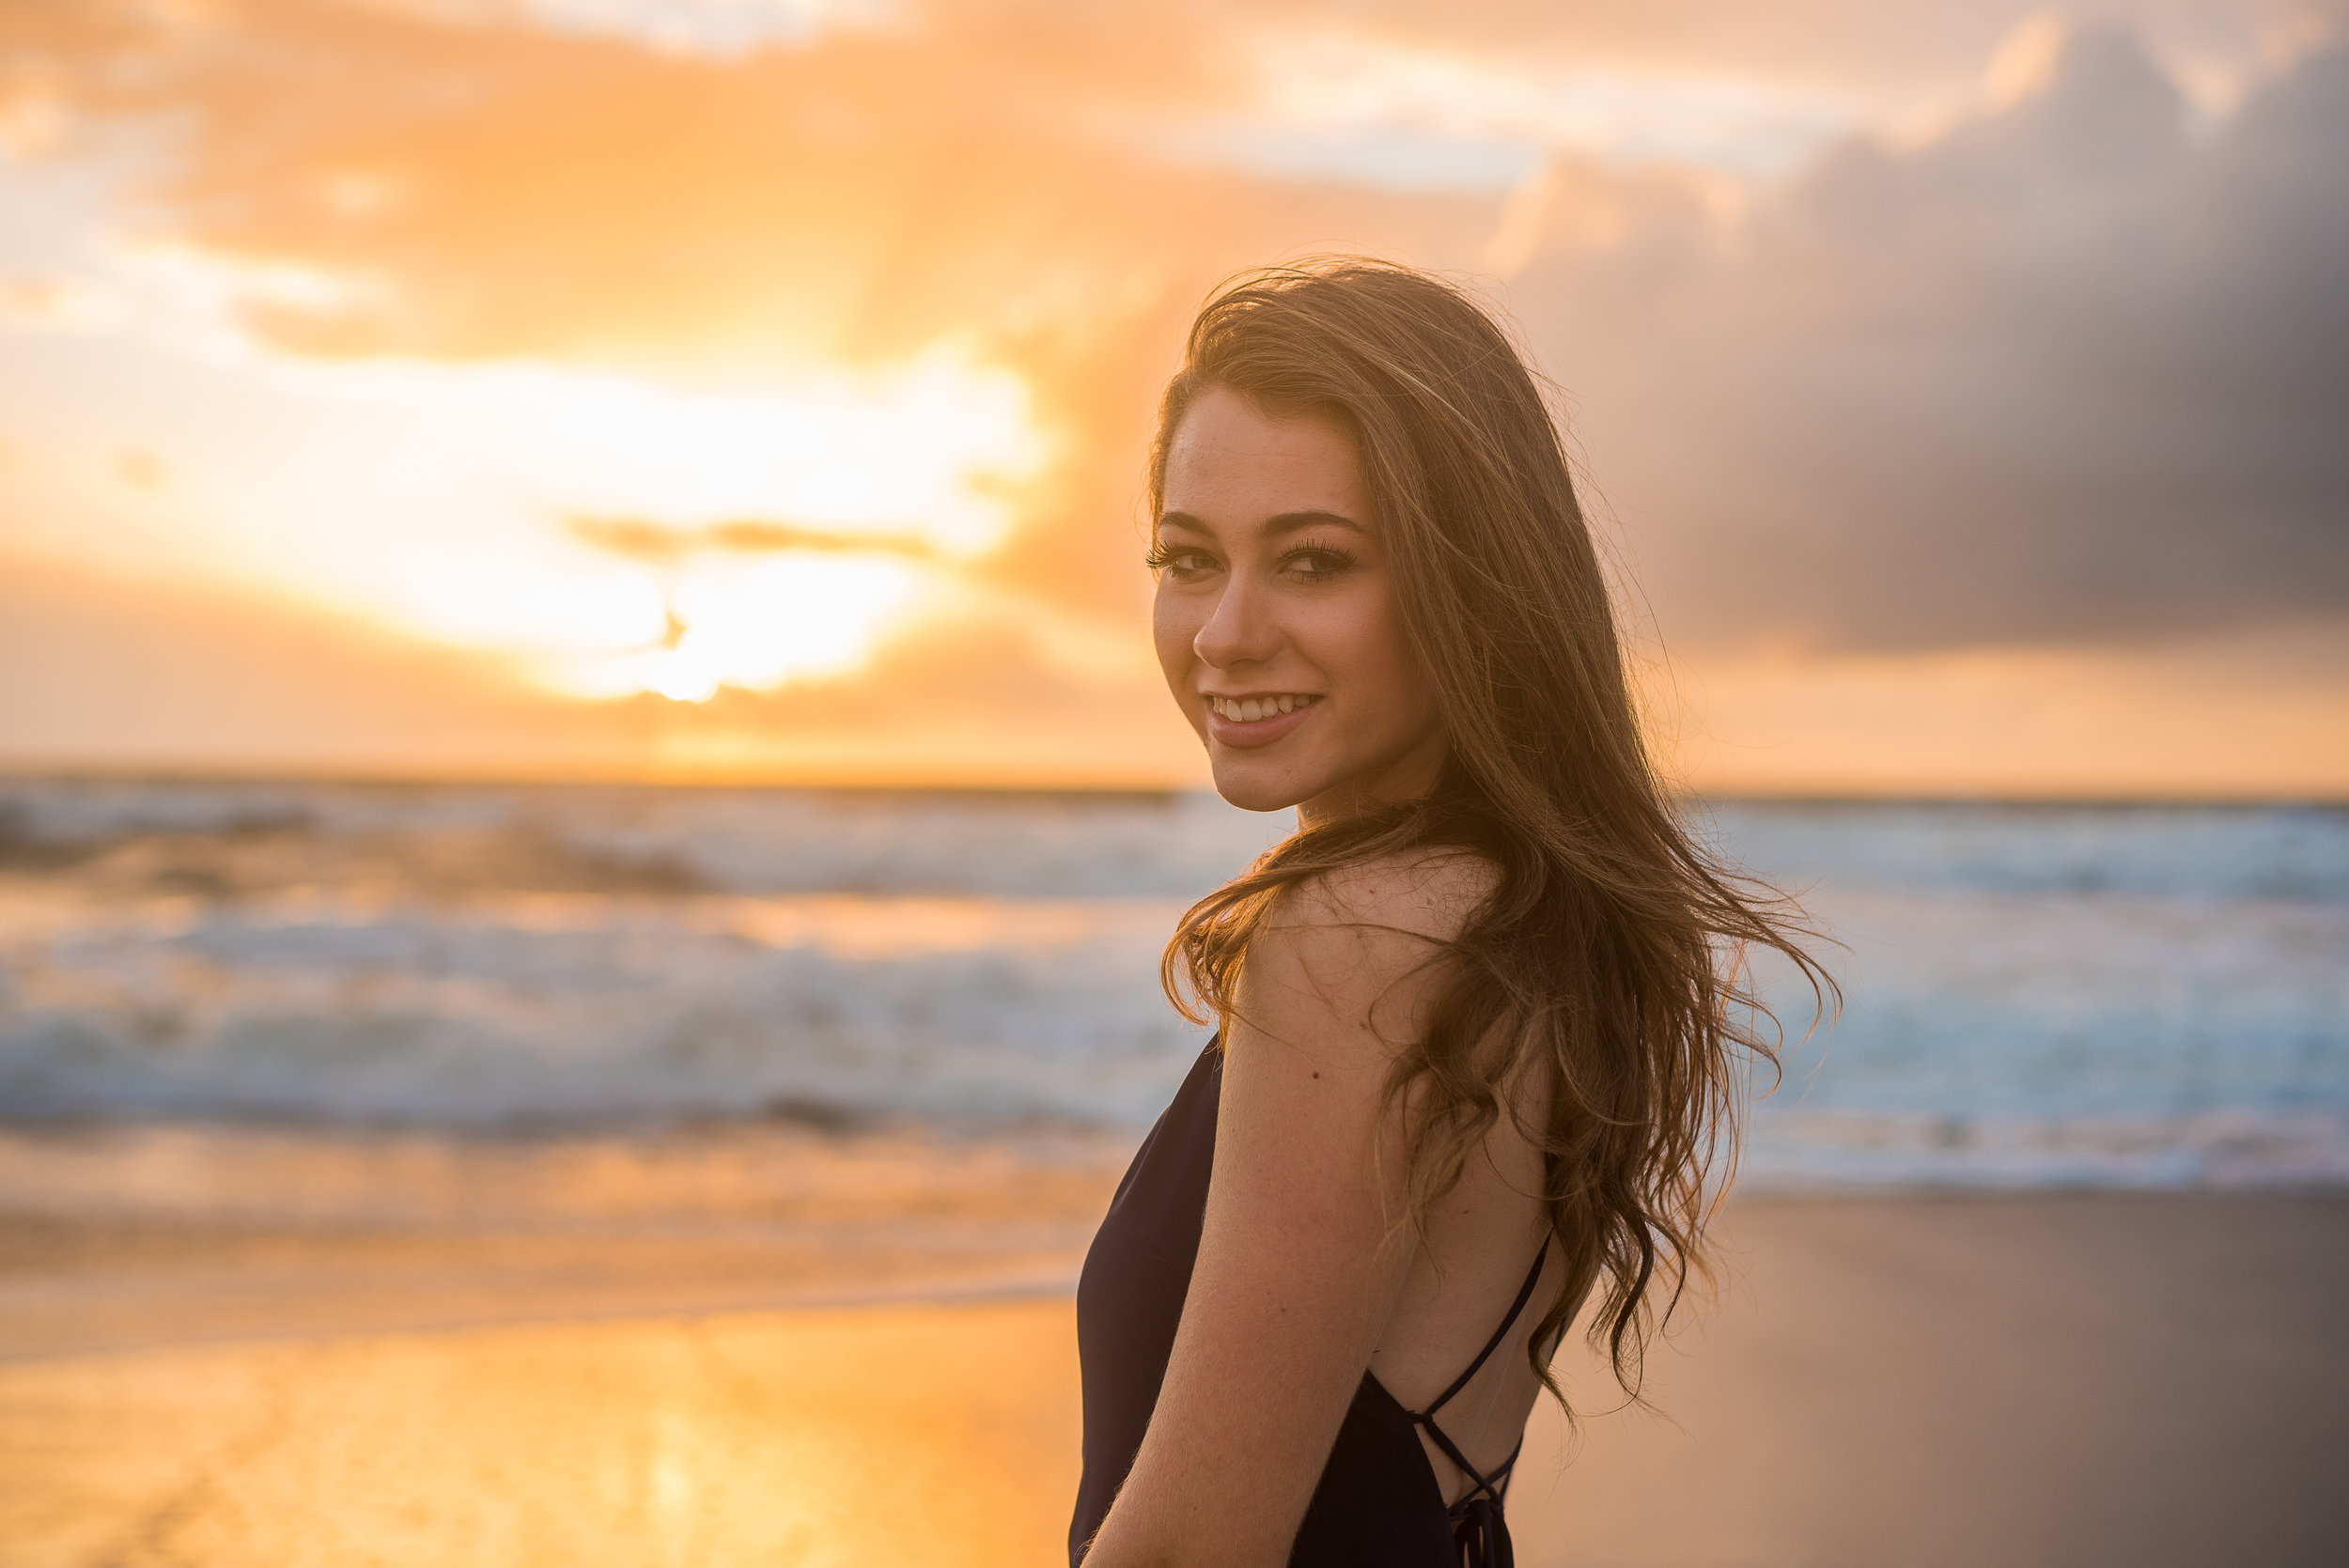 heather-senior-picture-sunrise-1-4.jpg